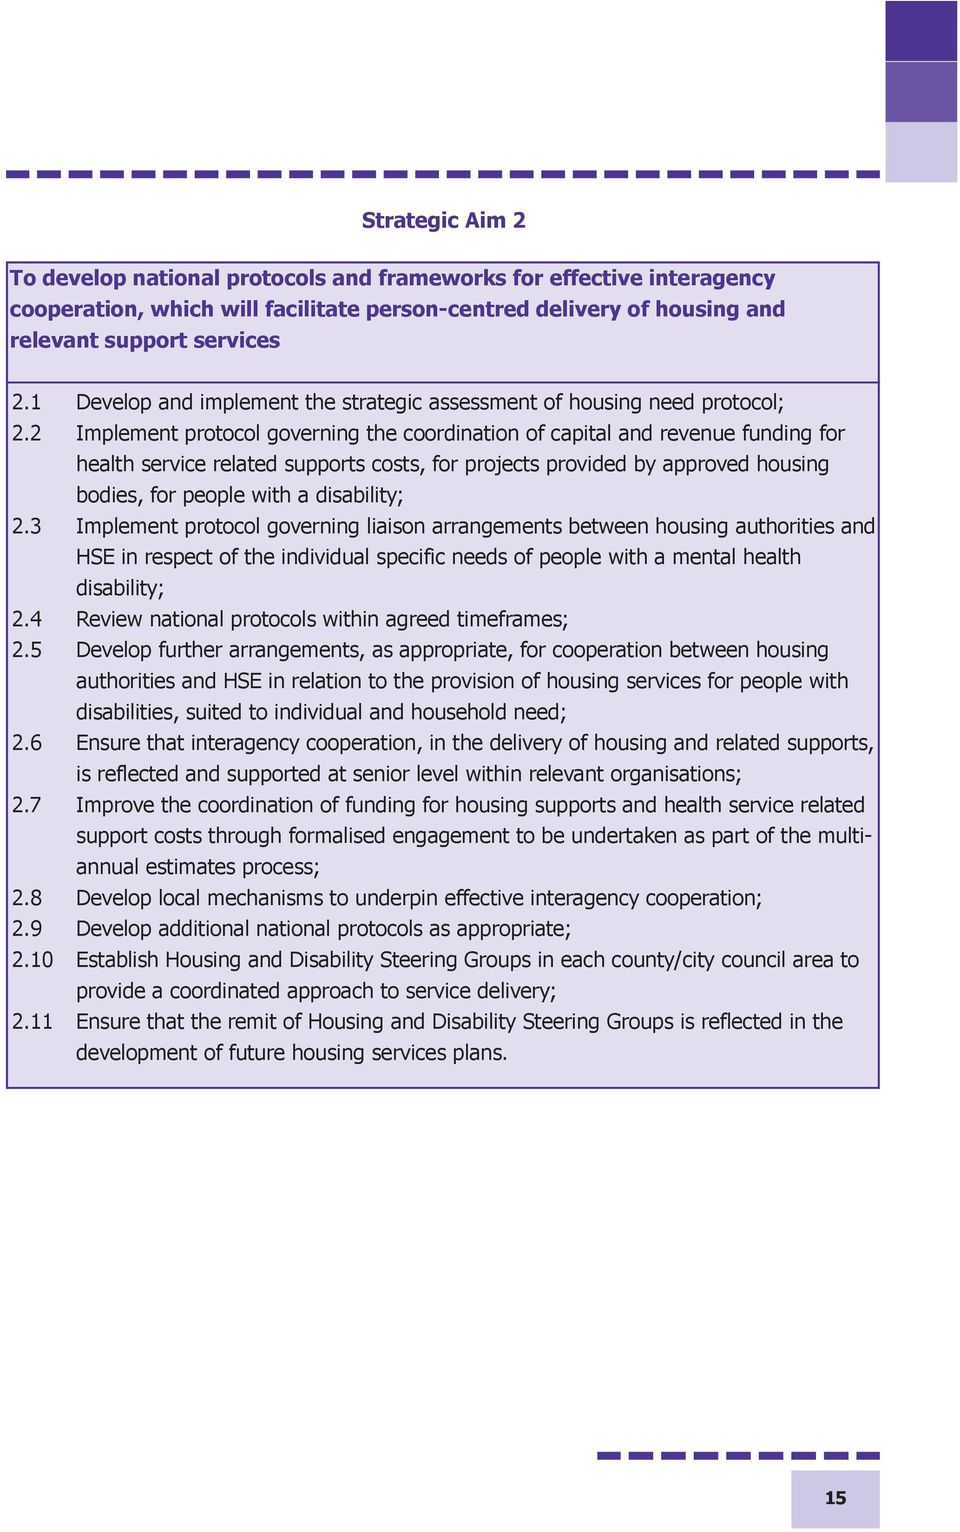 2 Implement protocol governing the coordination of capital and revenue funding for health service related supports costs, for projects provided by approved housing bodies, for people with a